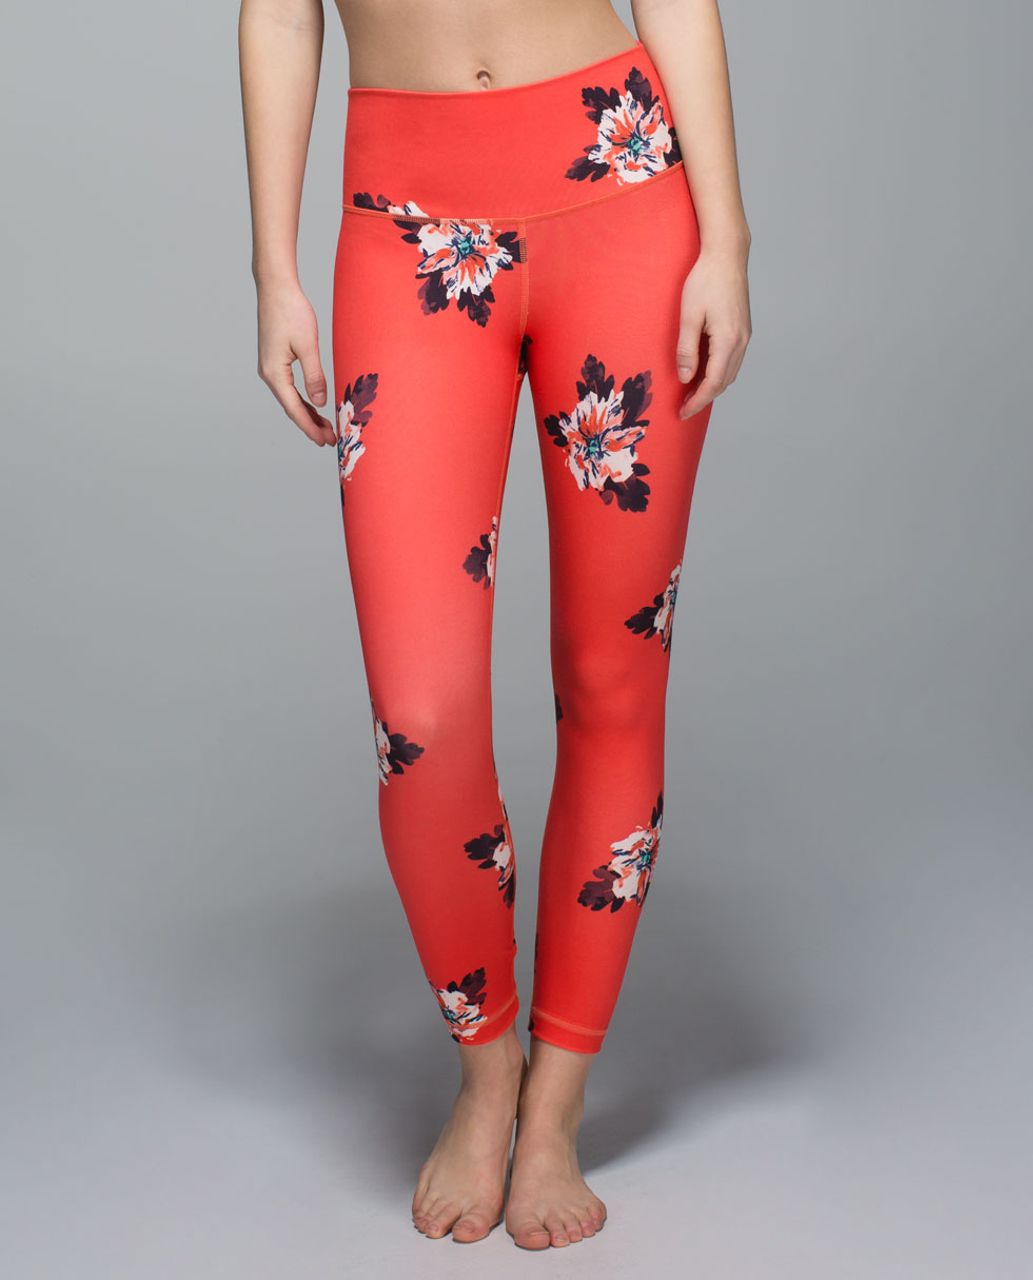 Lululemon High Times Pant - Atomic Flower Parfait Pink Atomic Red